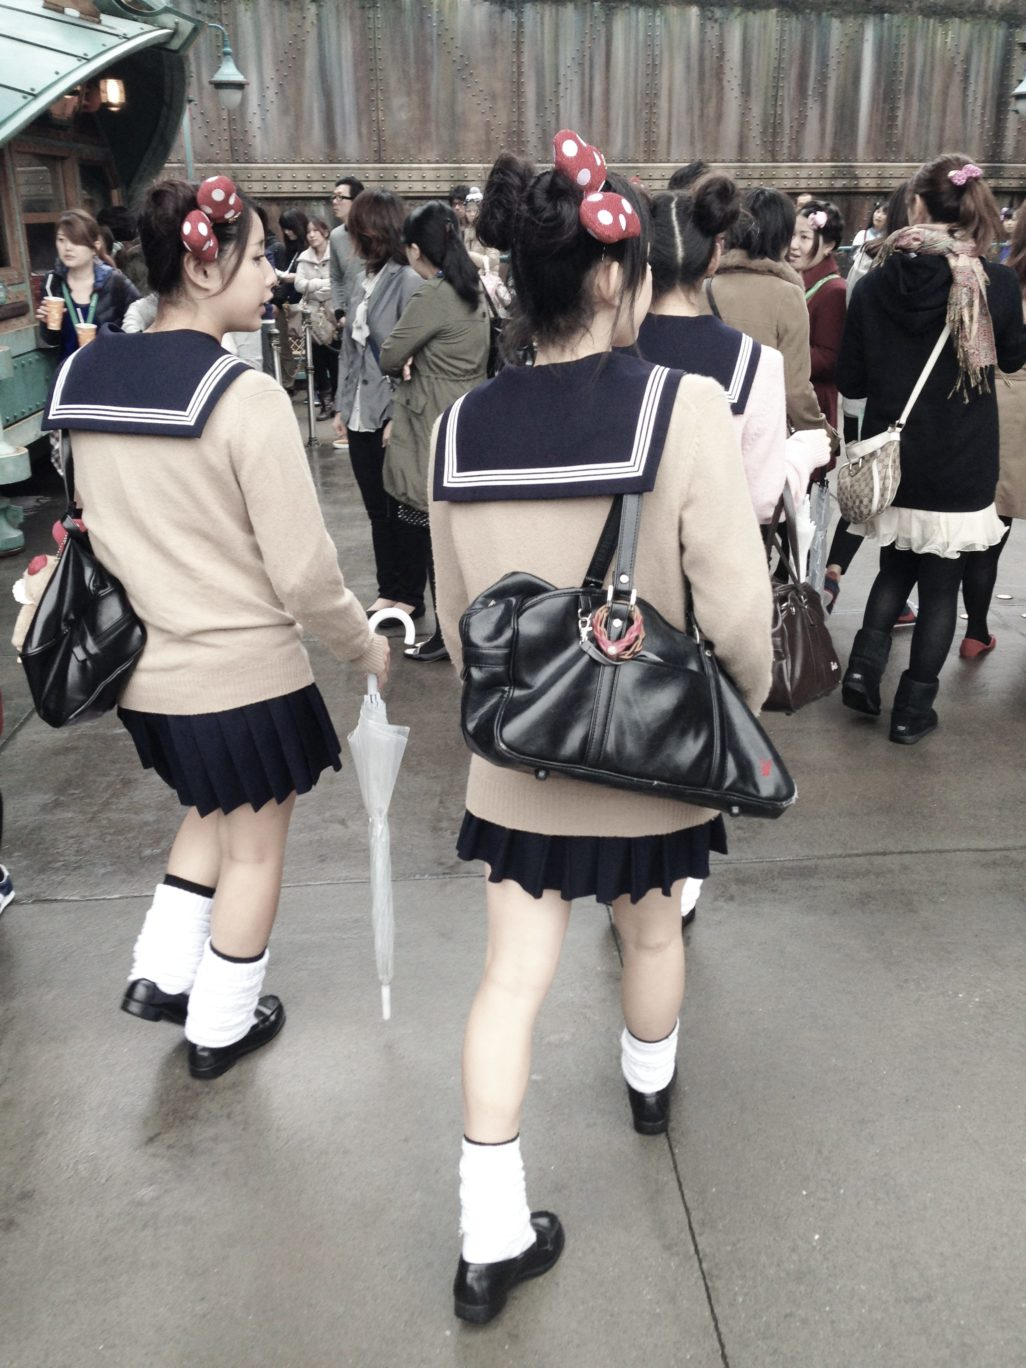 Kawaii Tokyo Disney Sea Tokyo Disney Sea Tokyo Disneyland Matching Outfits Tokyo, Japan Cute 5